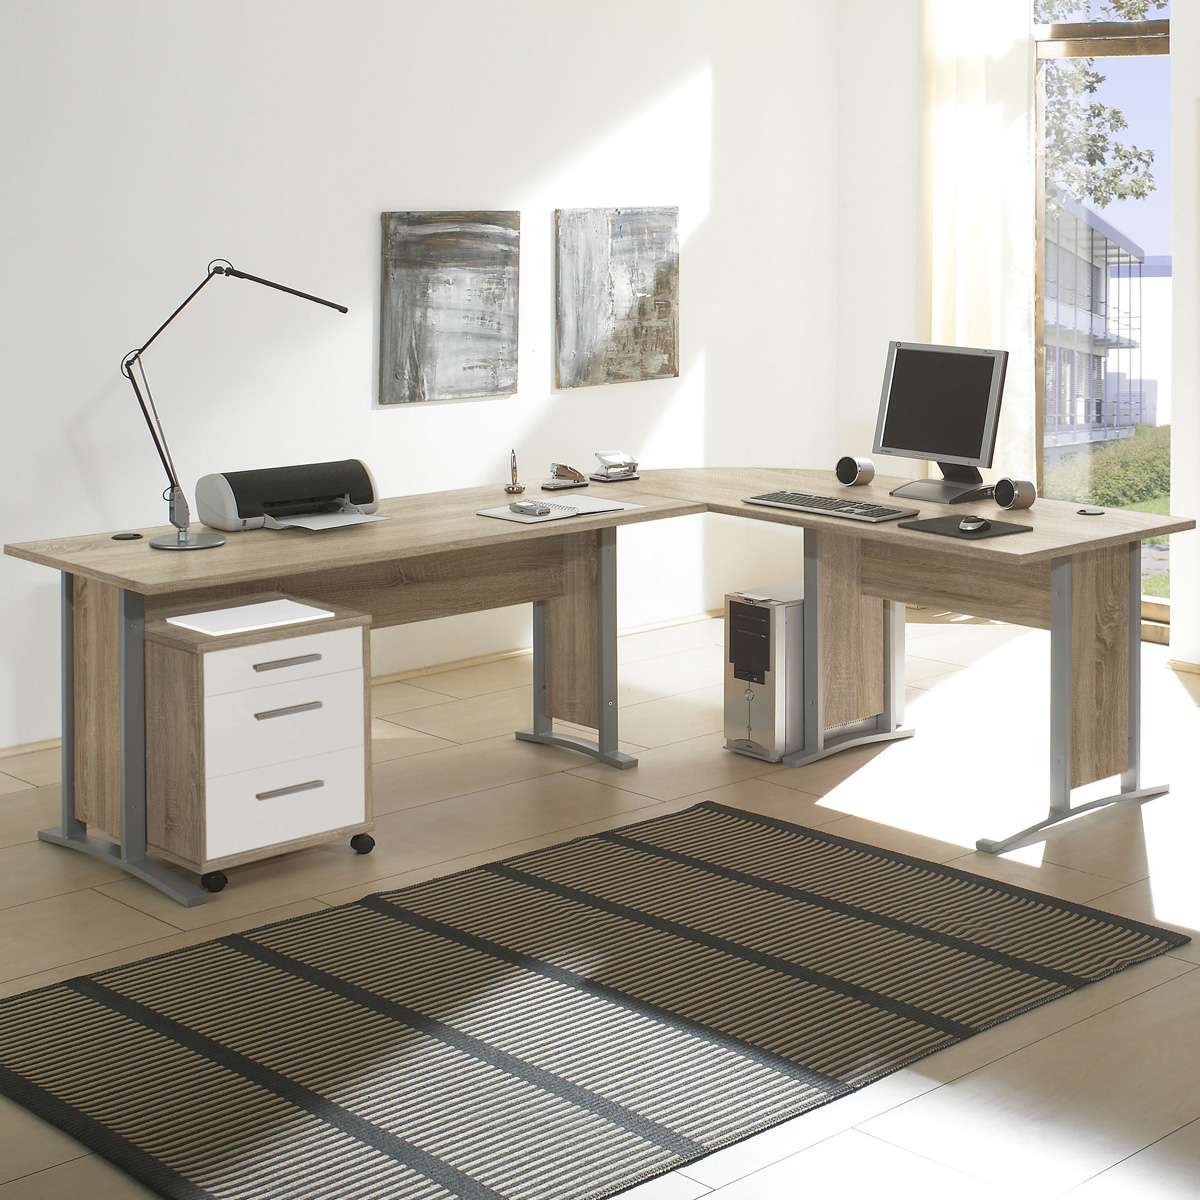 winkelschreibtisch office line biz schreibtisch kombination sonoma eiche wei ebay. Black Bedroom Furniture Sets. Home Design Ideas